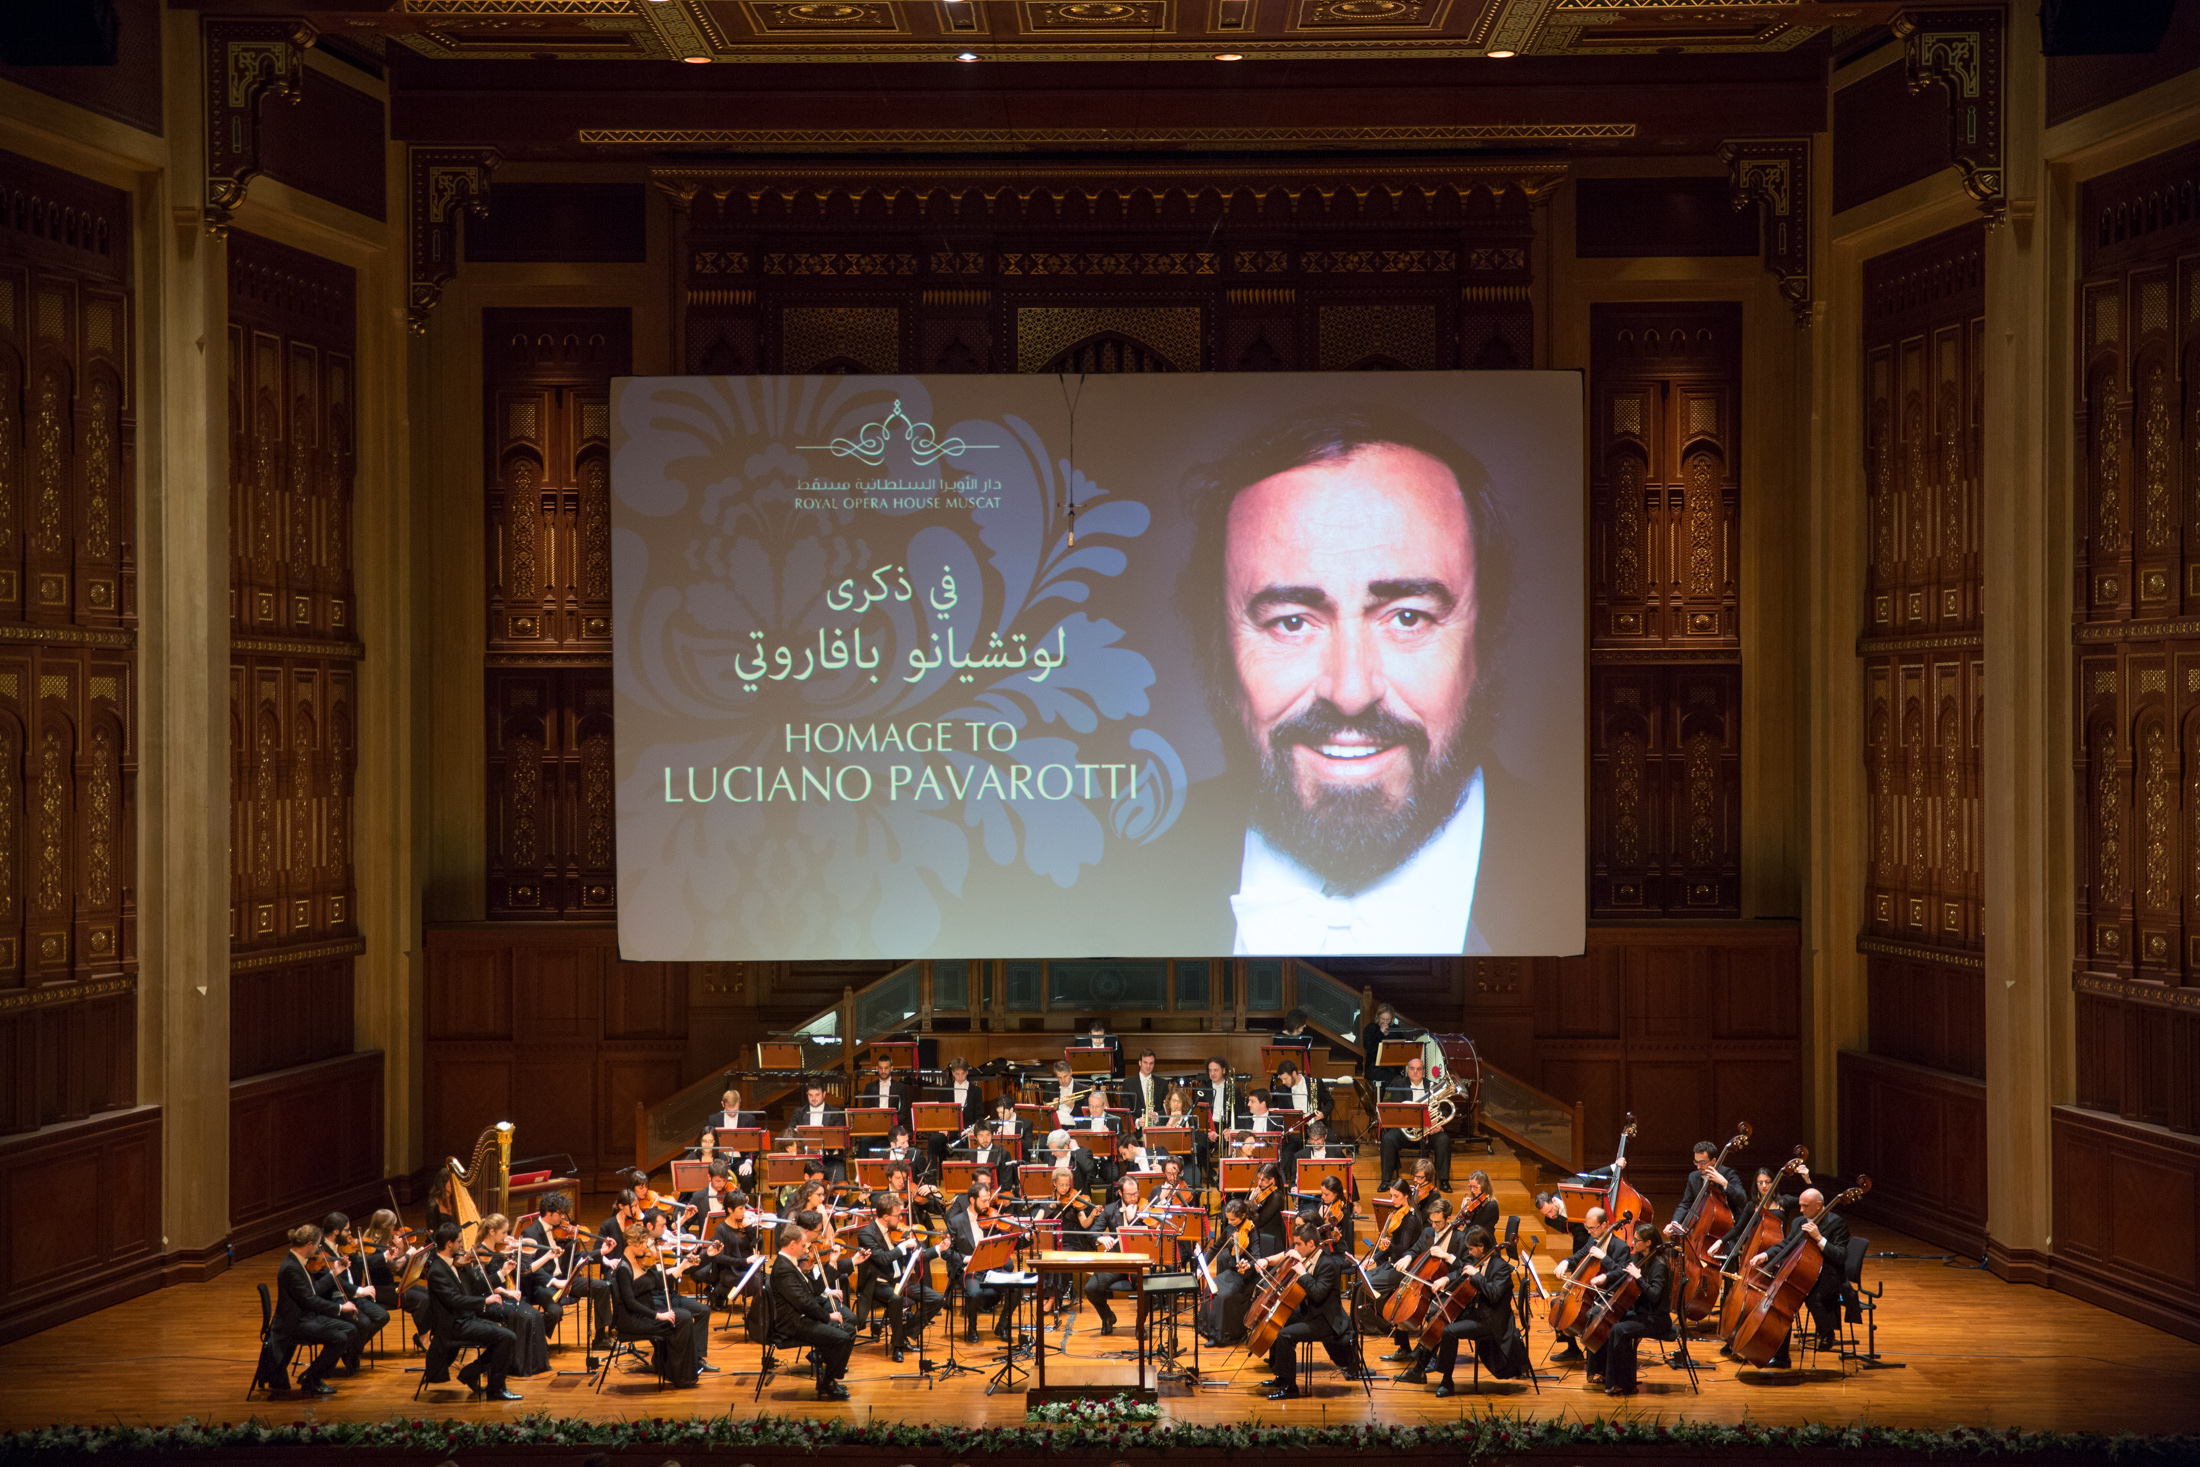 Homage to Luciano Pavarotti | Muscat, Oman